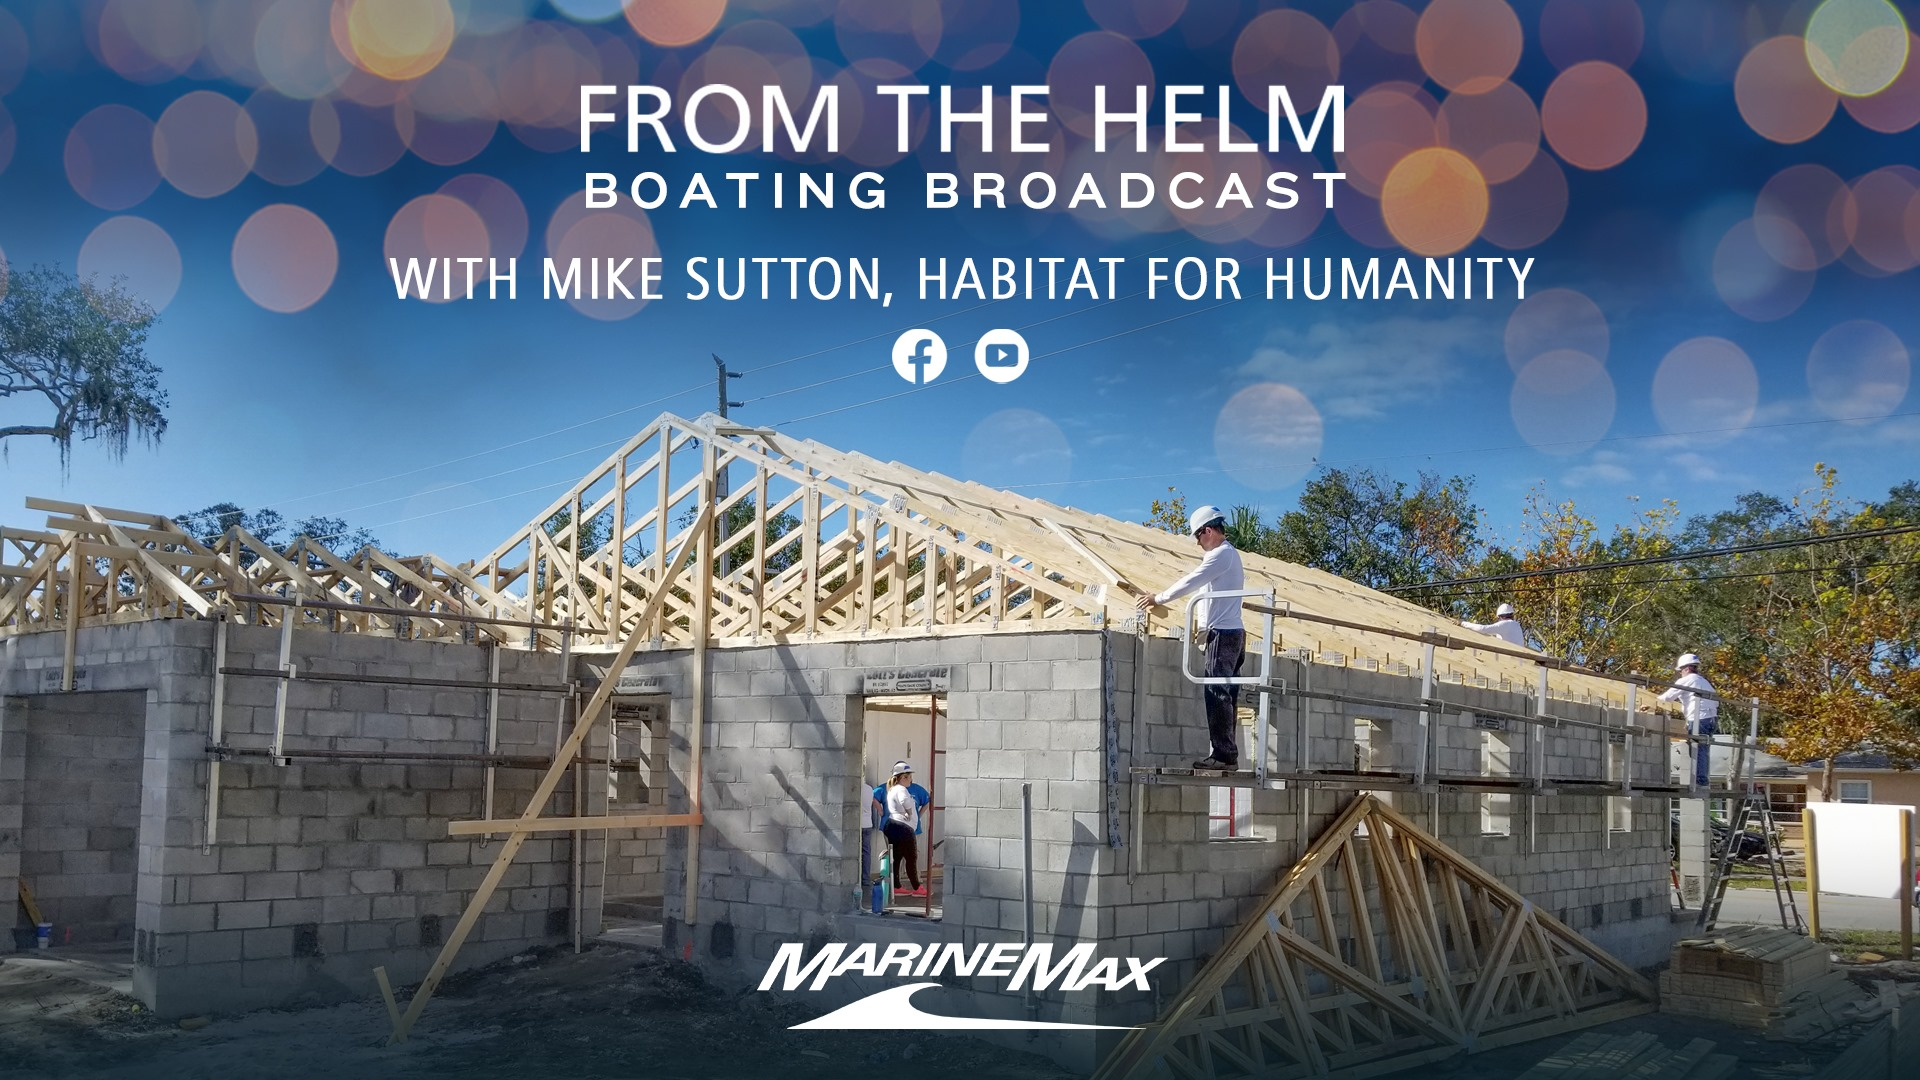 Habitat for Humanity | From the Helm | Boating Broadcast